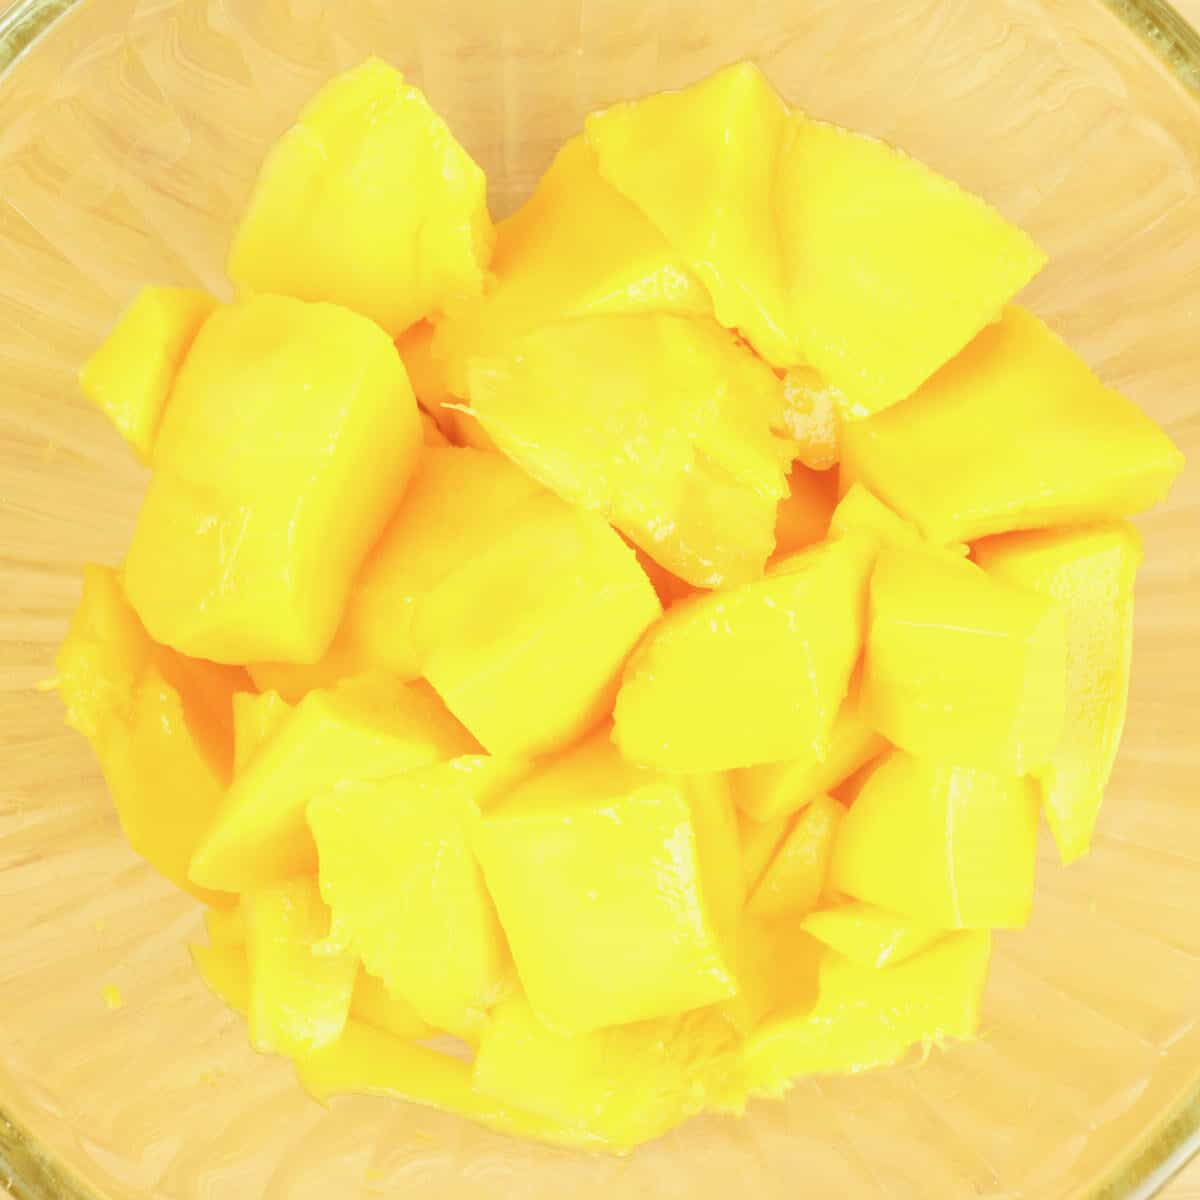 2 mangoes cut into chunks and ready for steeping.